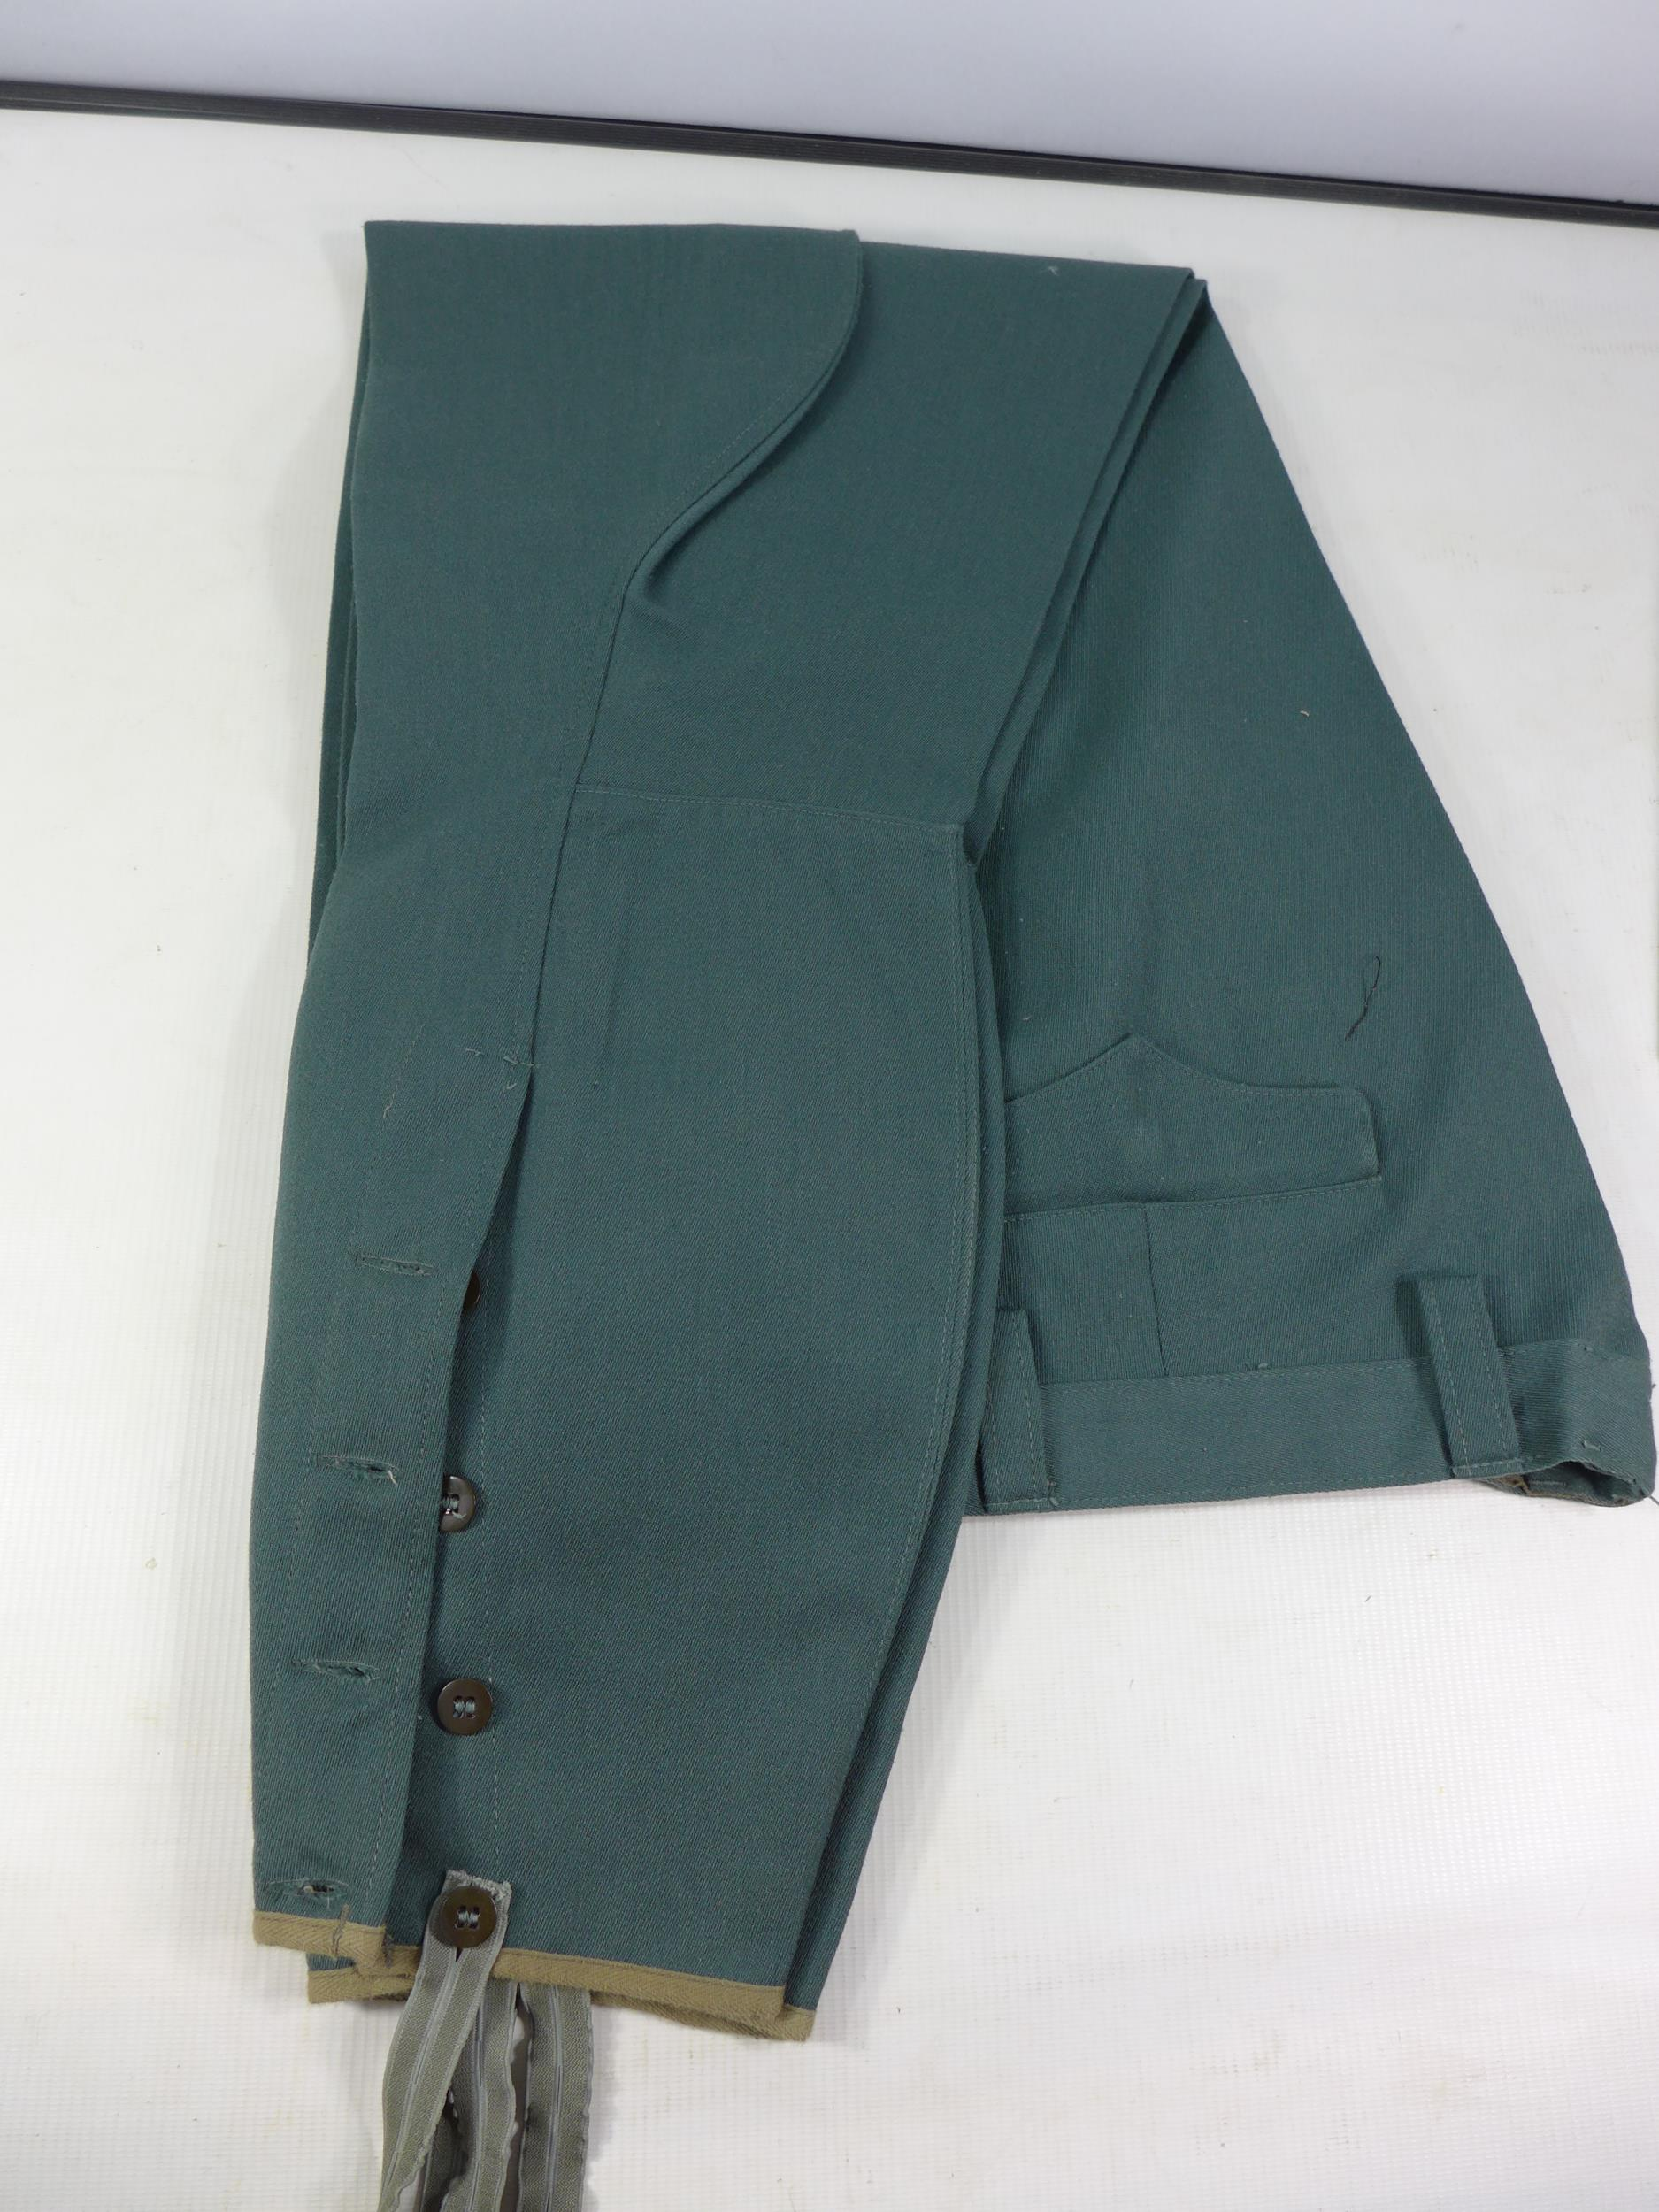 A POST WWII UNIFORM, PROBABLY GERMAN COMPRISING OF A JACKET AND TROUSERS - Image 5 of 6